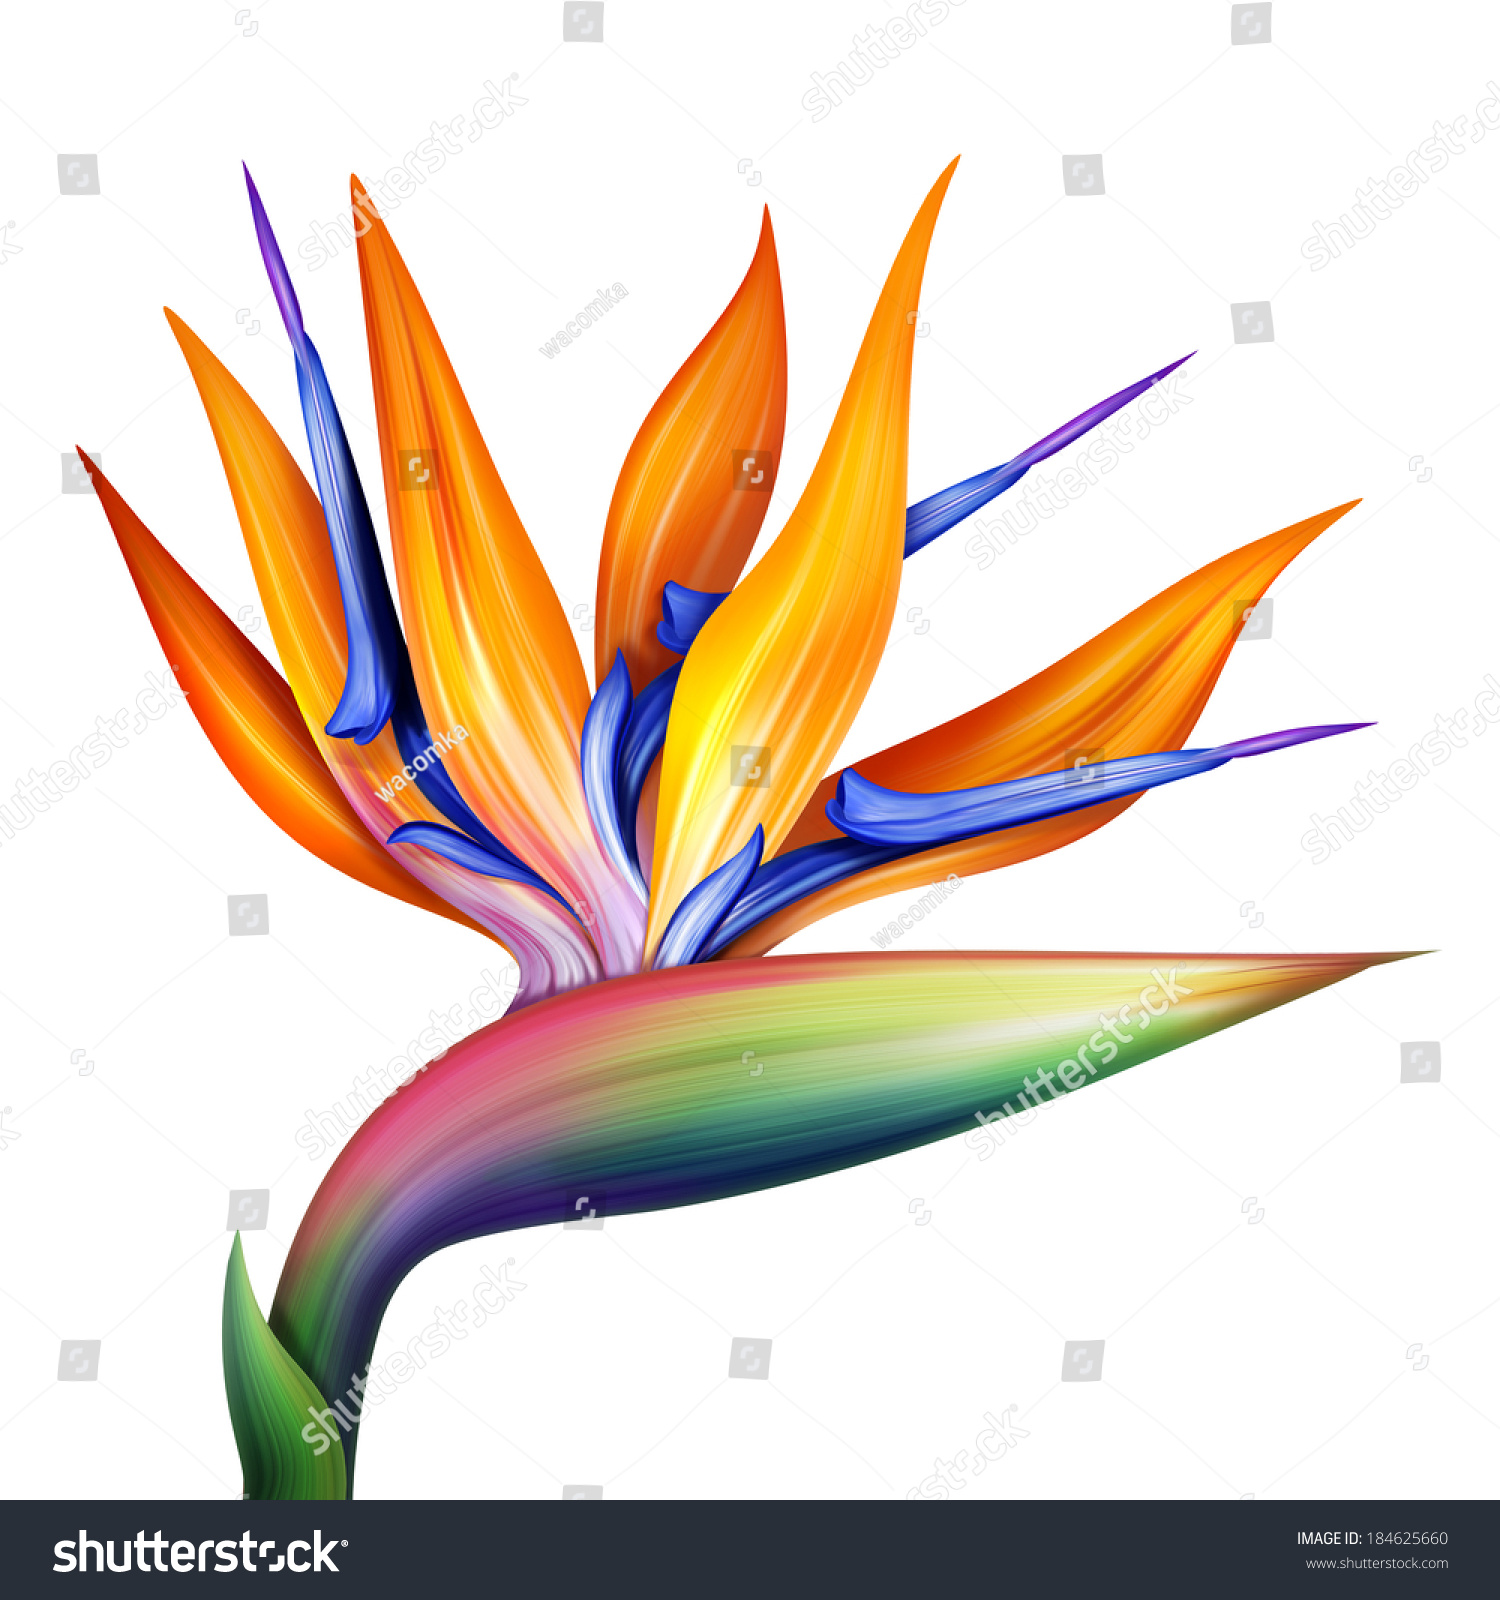 Strelitzia bird paradise flower isolated on stock illustration strelitzia bird of paradise flower isolated on white background botanical illustration mightylinksfo